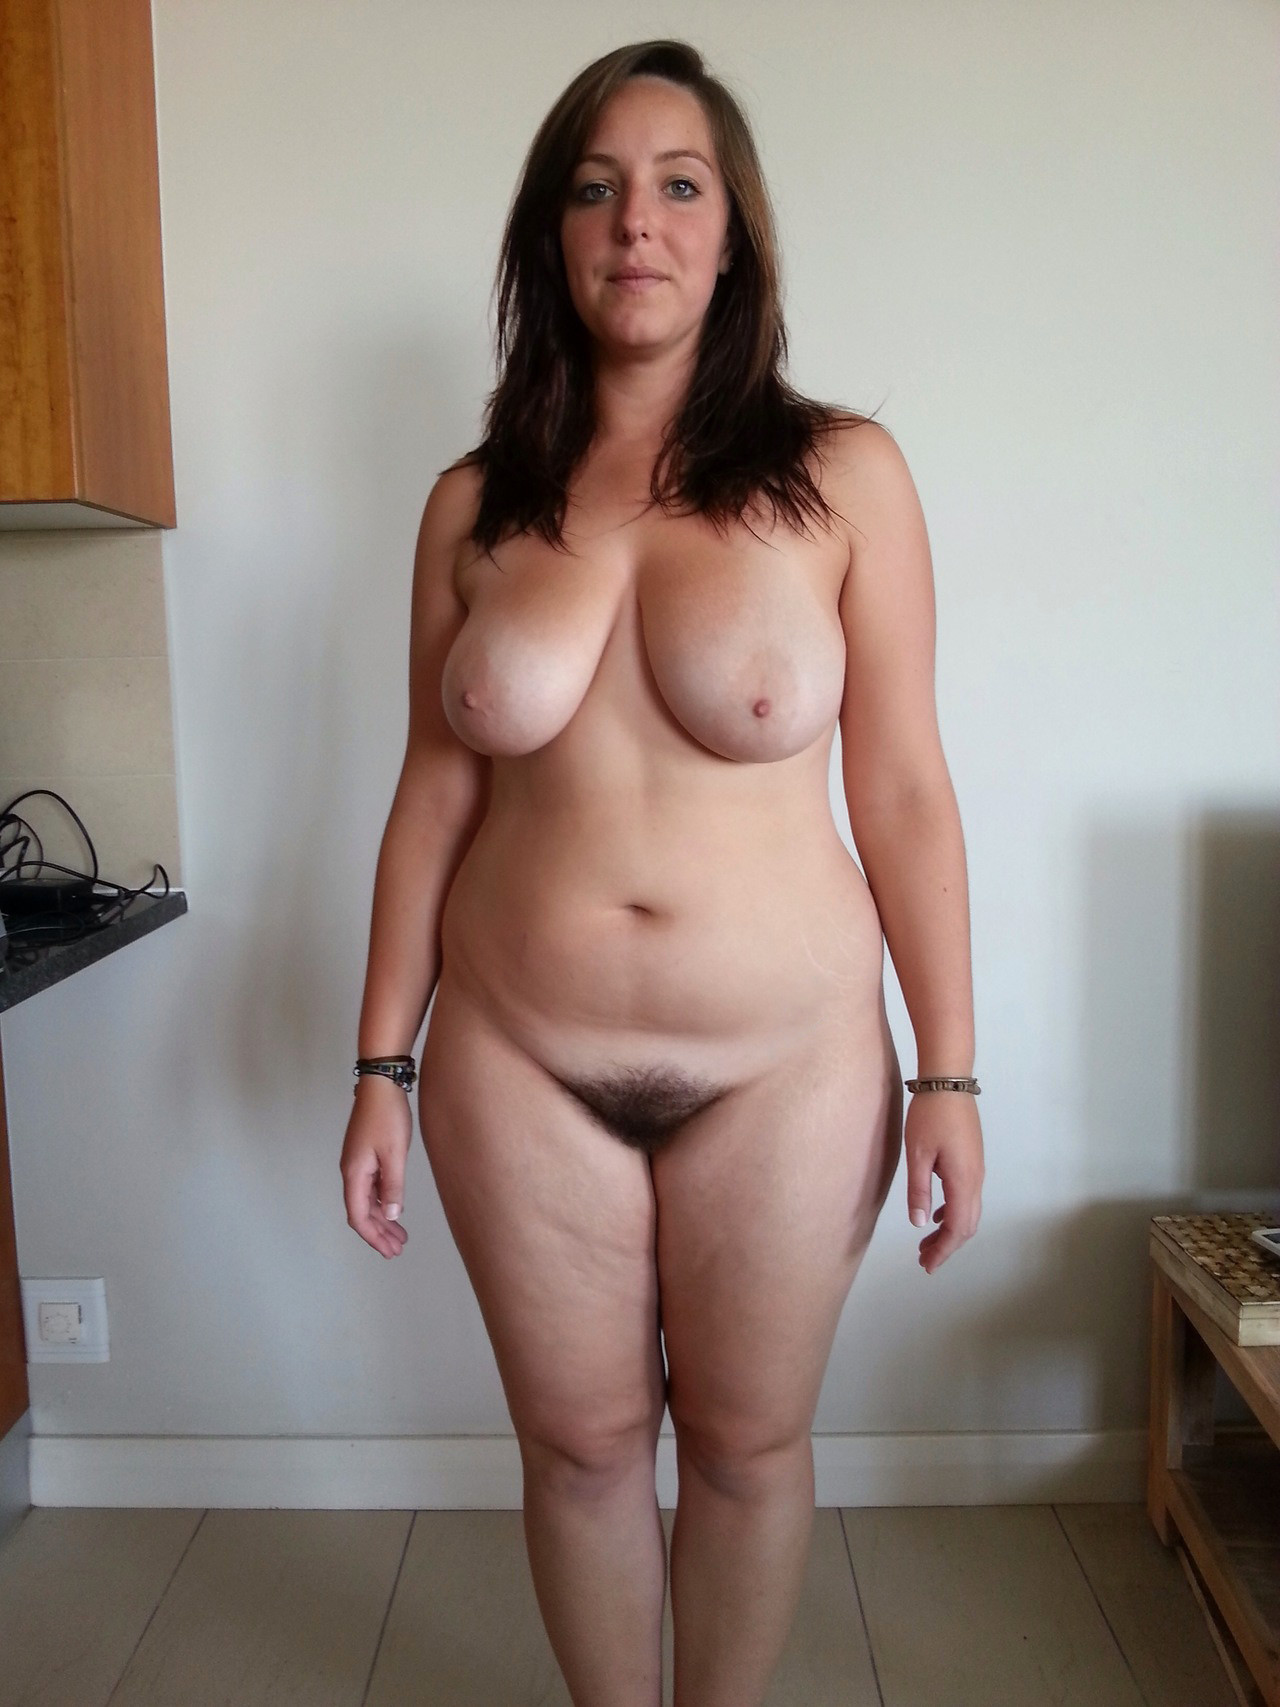 chubby-naked-women-photos